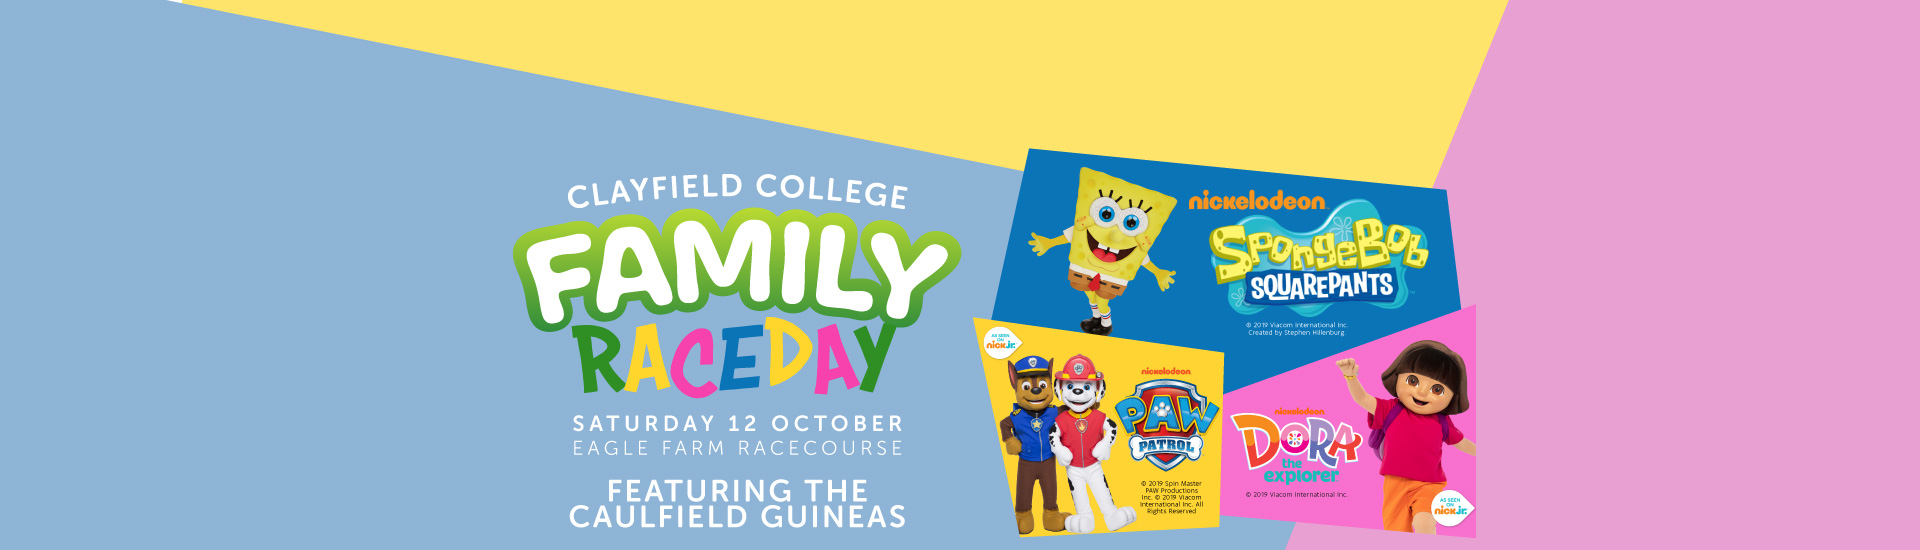 Clayfield College Family Raceday - Spring Racing Carnival Page Banner